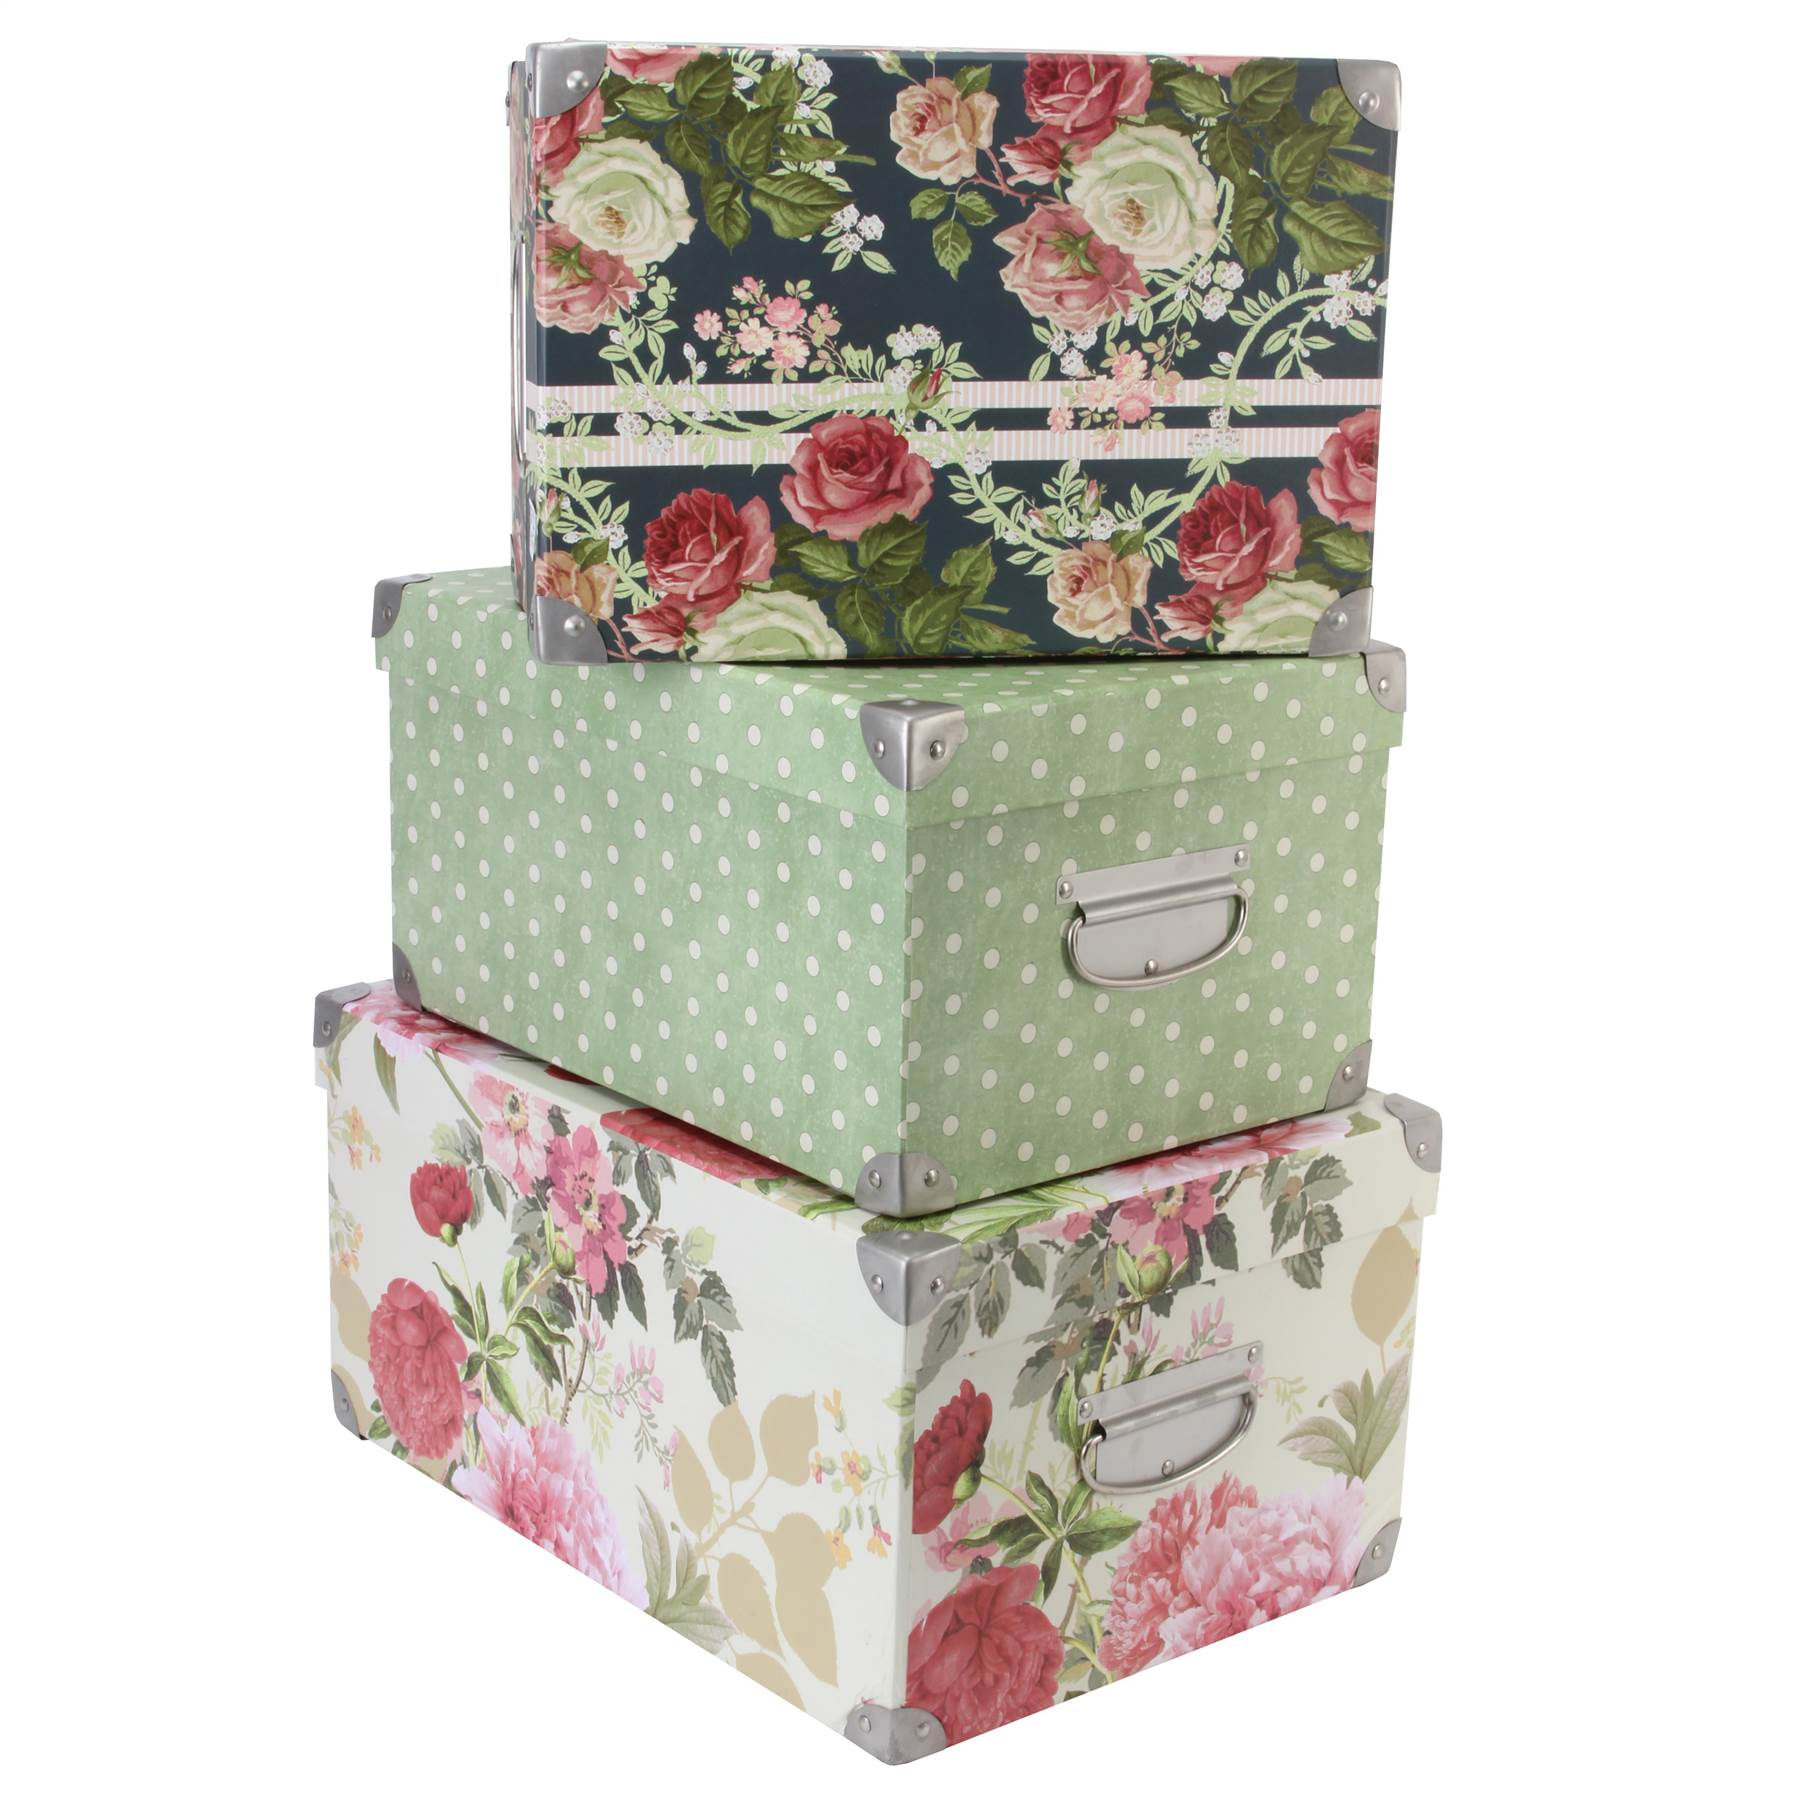 Decorative Storage Boxes Uk : Tri coastal design set of nesting storage box steamer